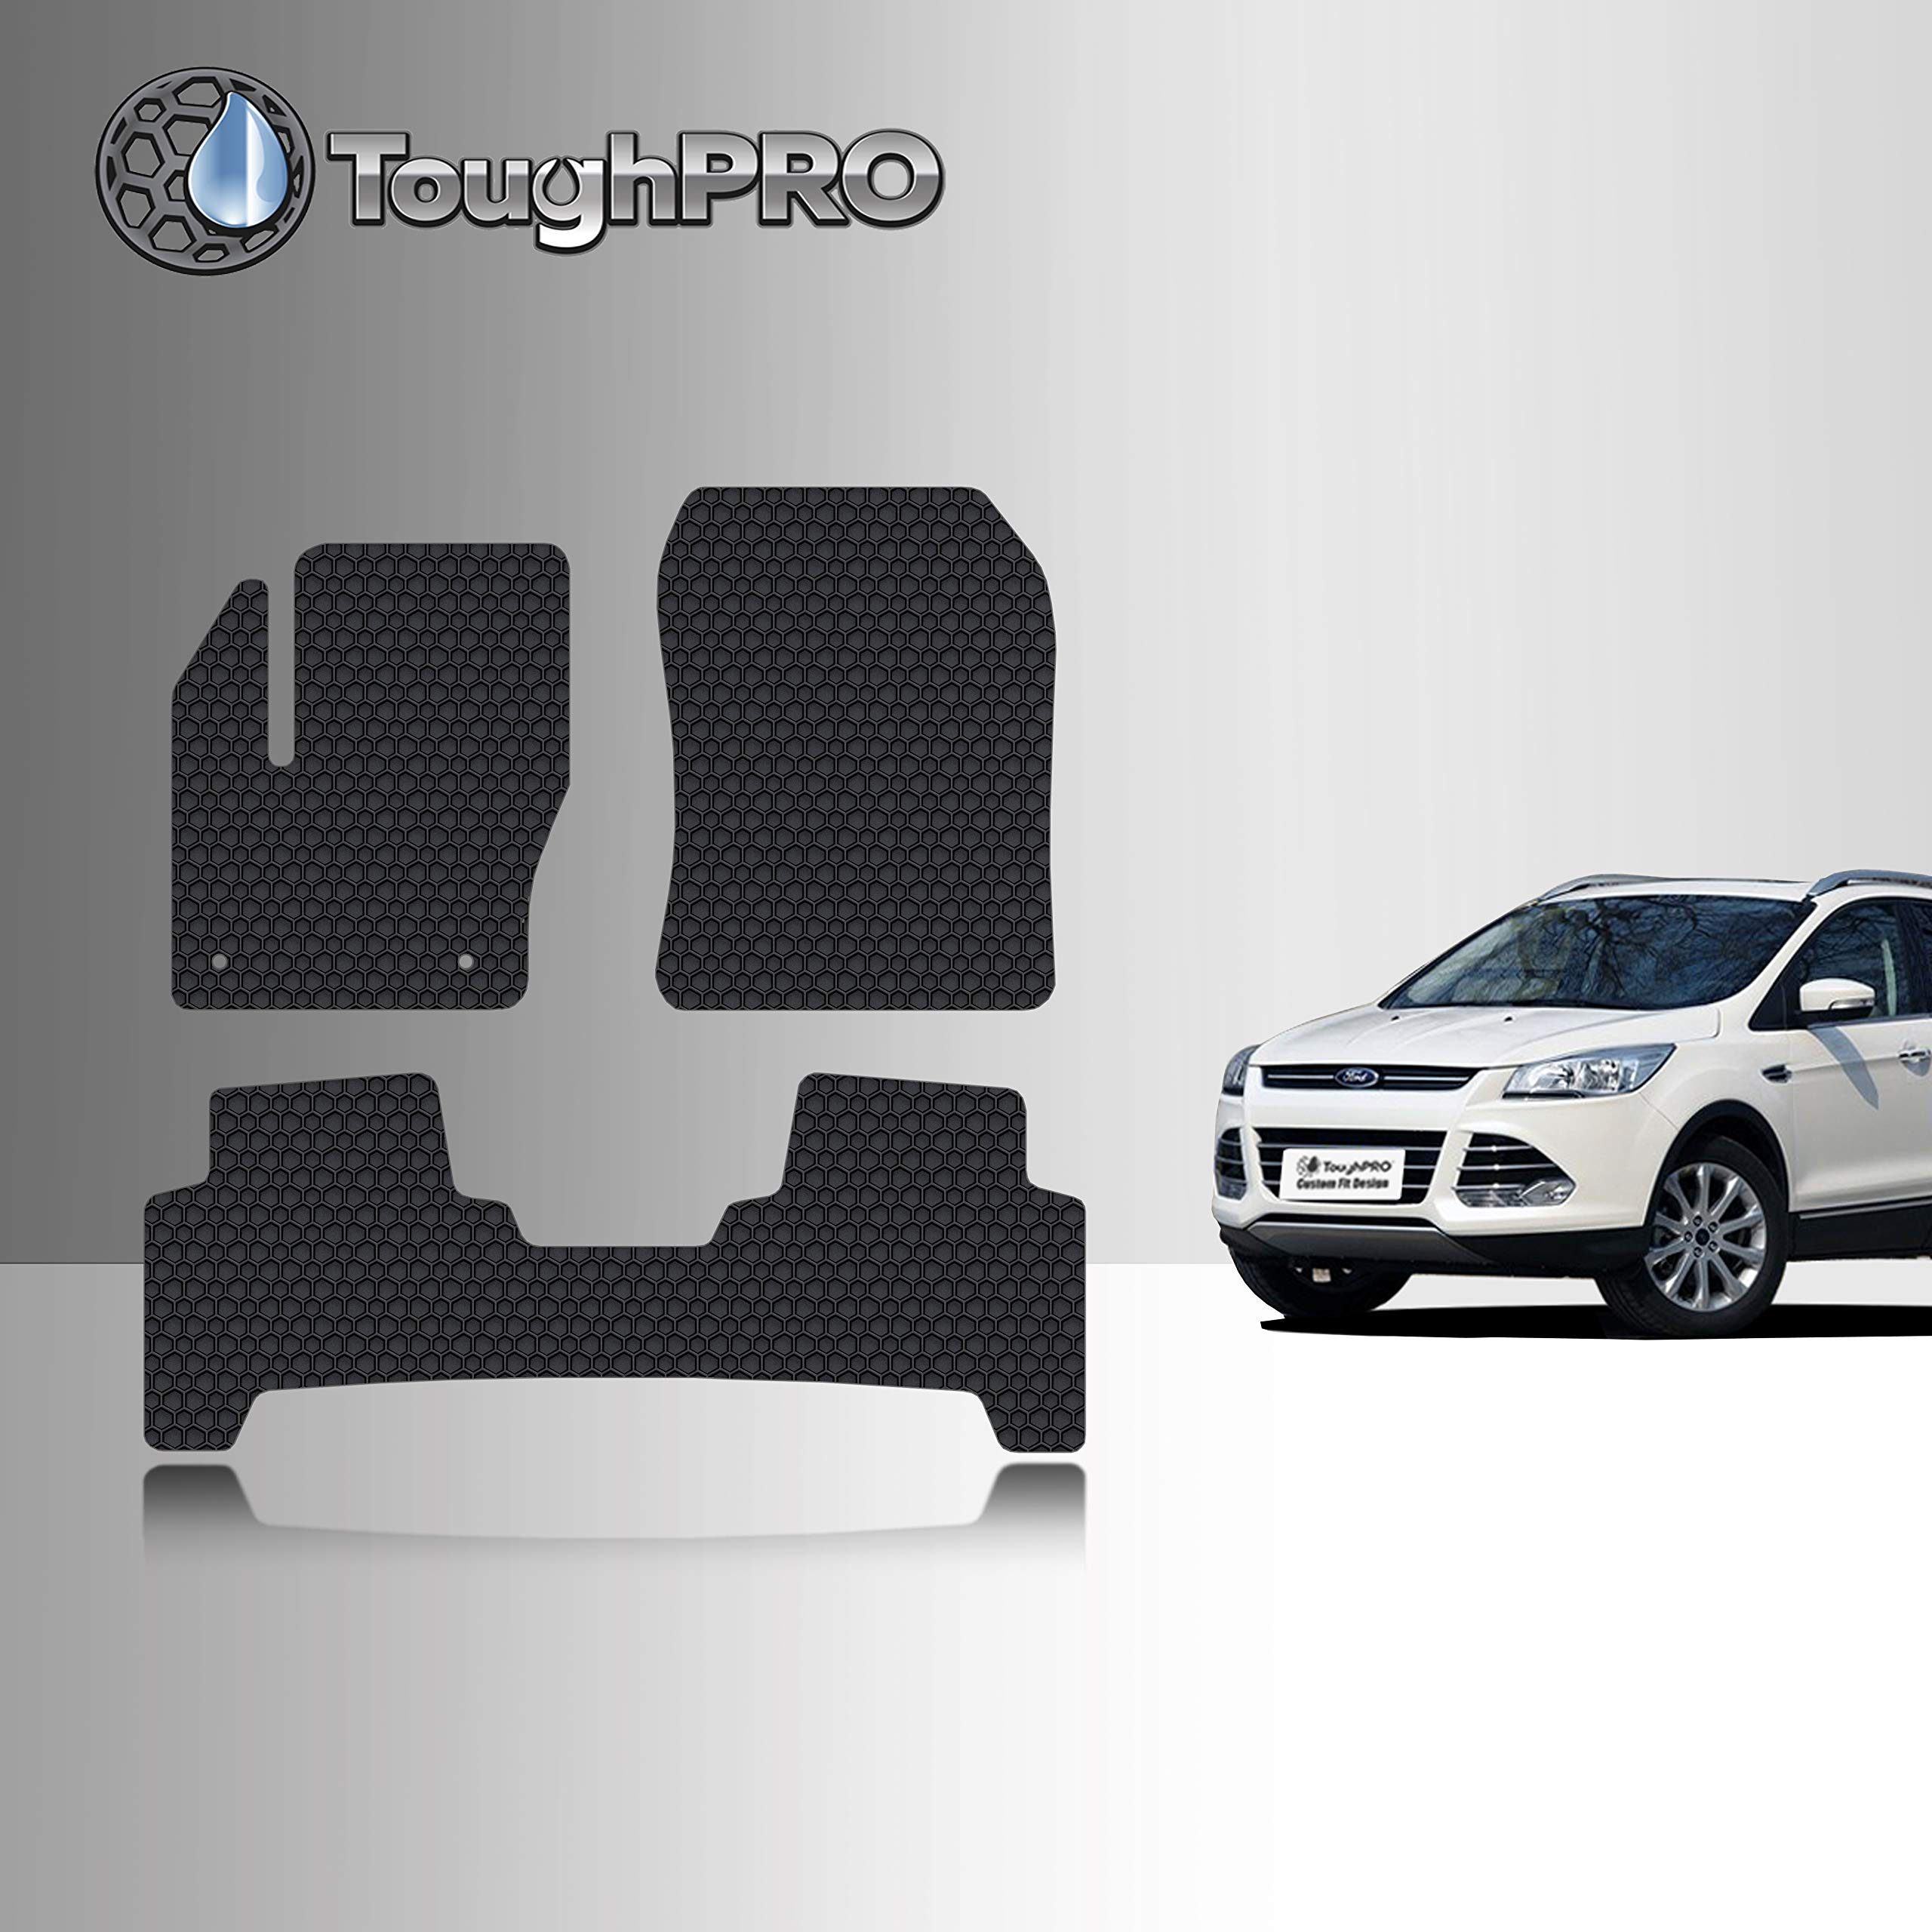 1st /& 2nd Row Liners Fits All 2013 2018 Escape Models Including C-Max 2016 2014 2017 Front /& Rear Liners - 100/% Weather Resistant 2015 Elements Defender 2013-2018 Ford Escape Floor Mats